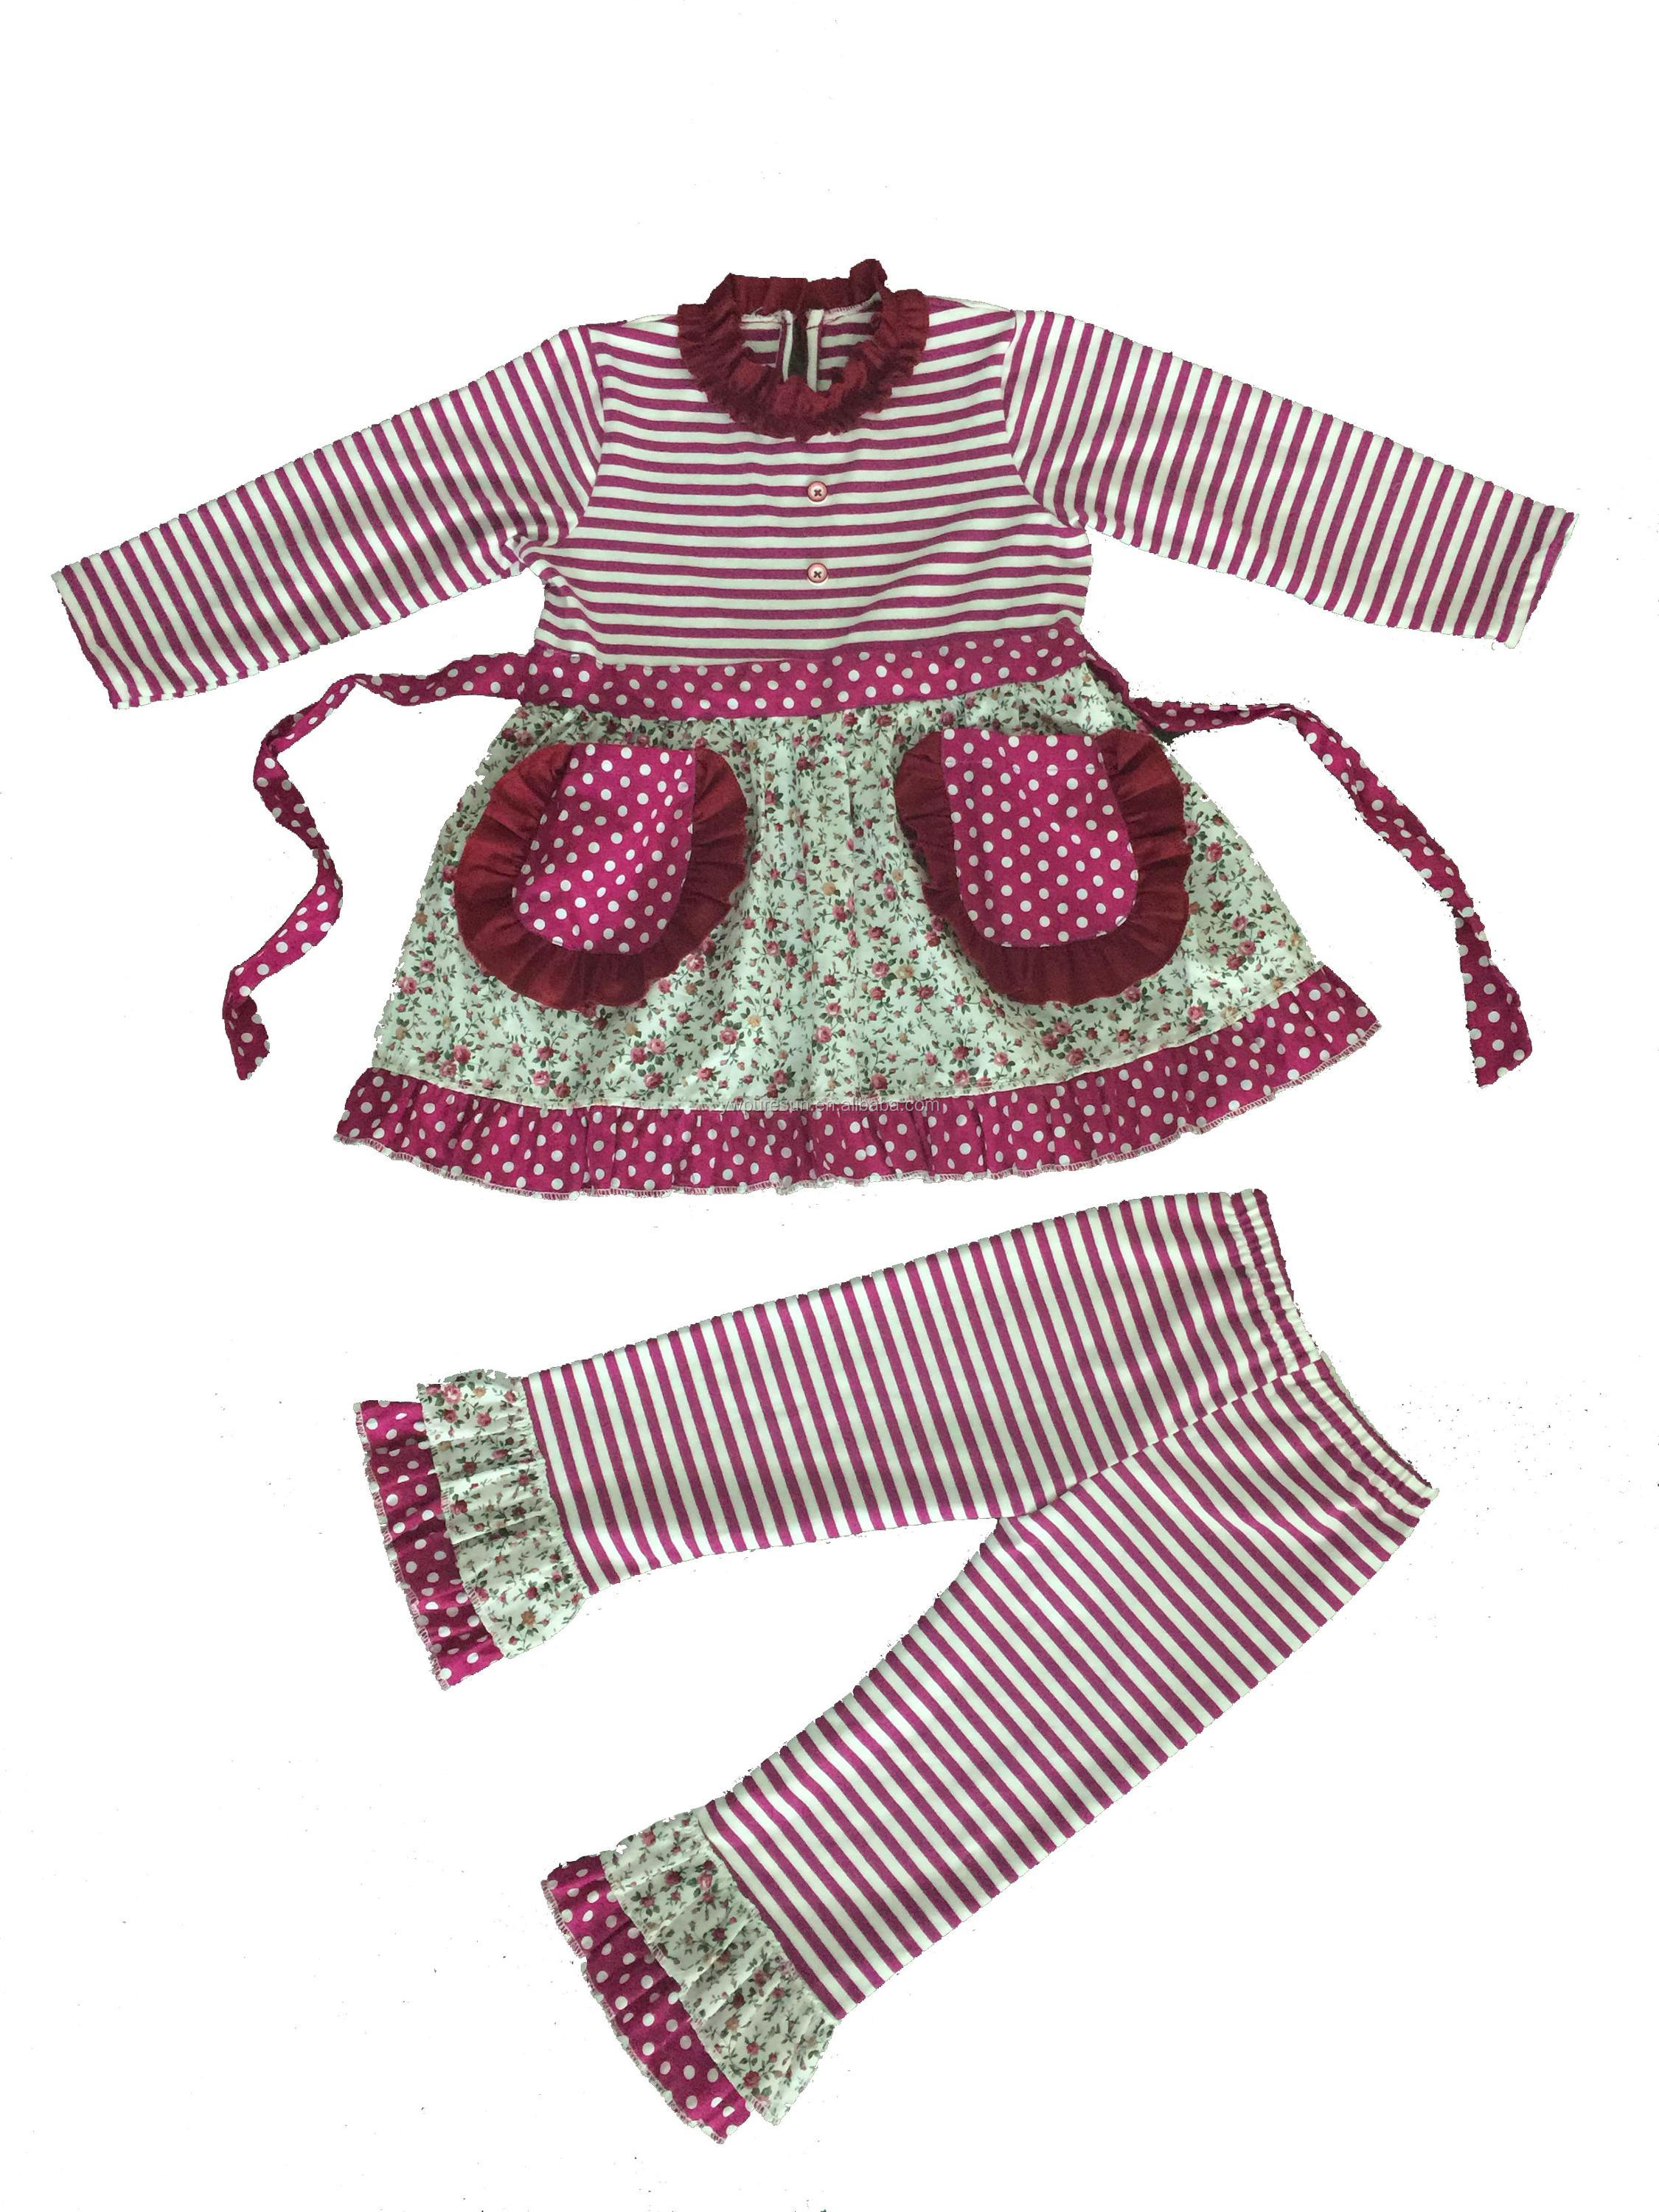 Mustard pie remake child knit cotton clothing sets for wholesale